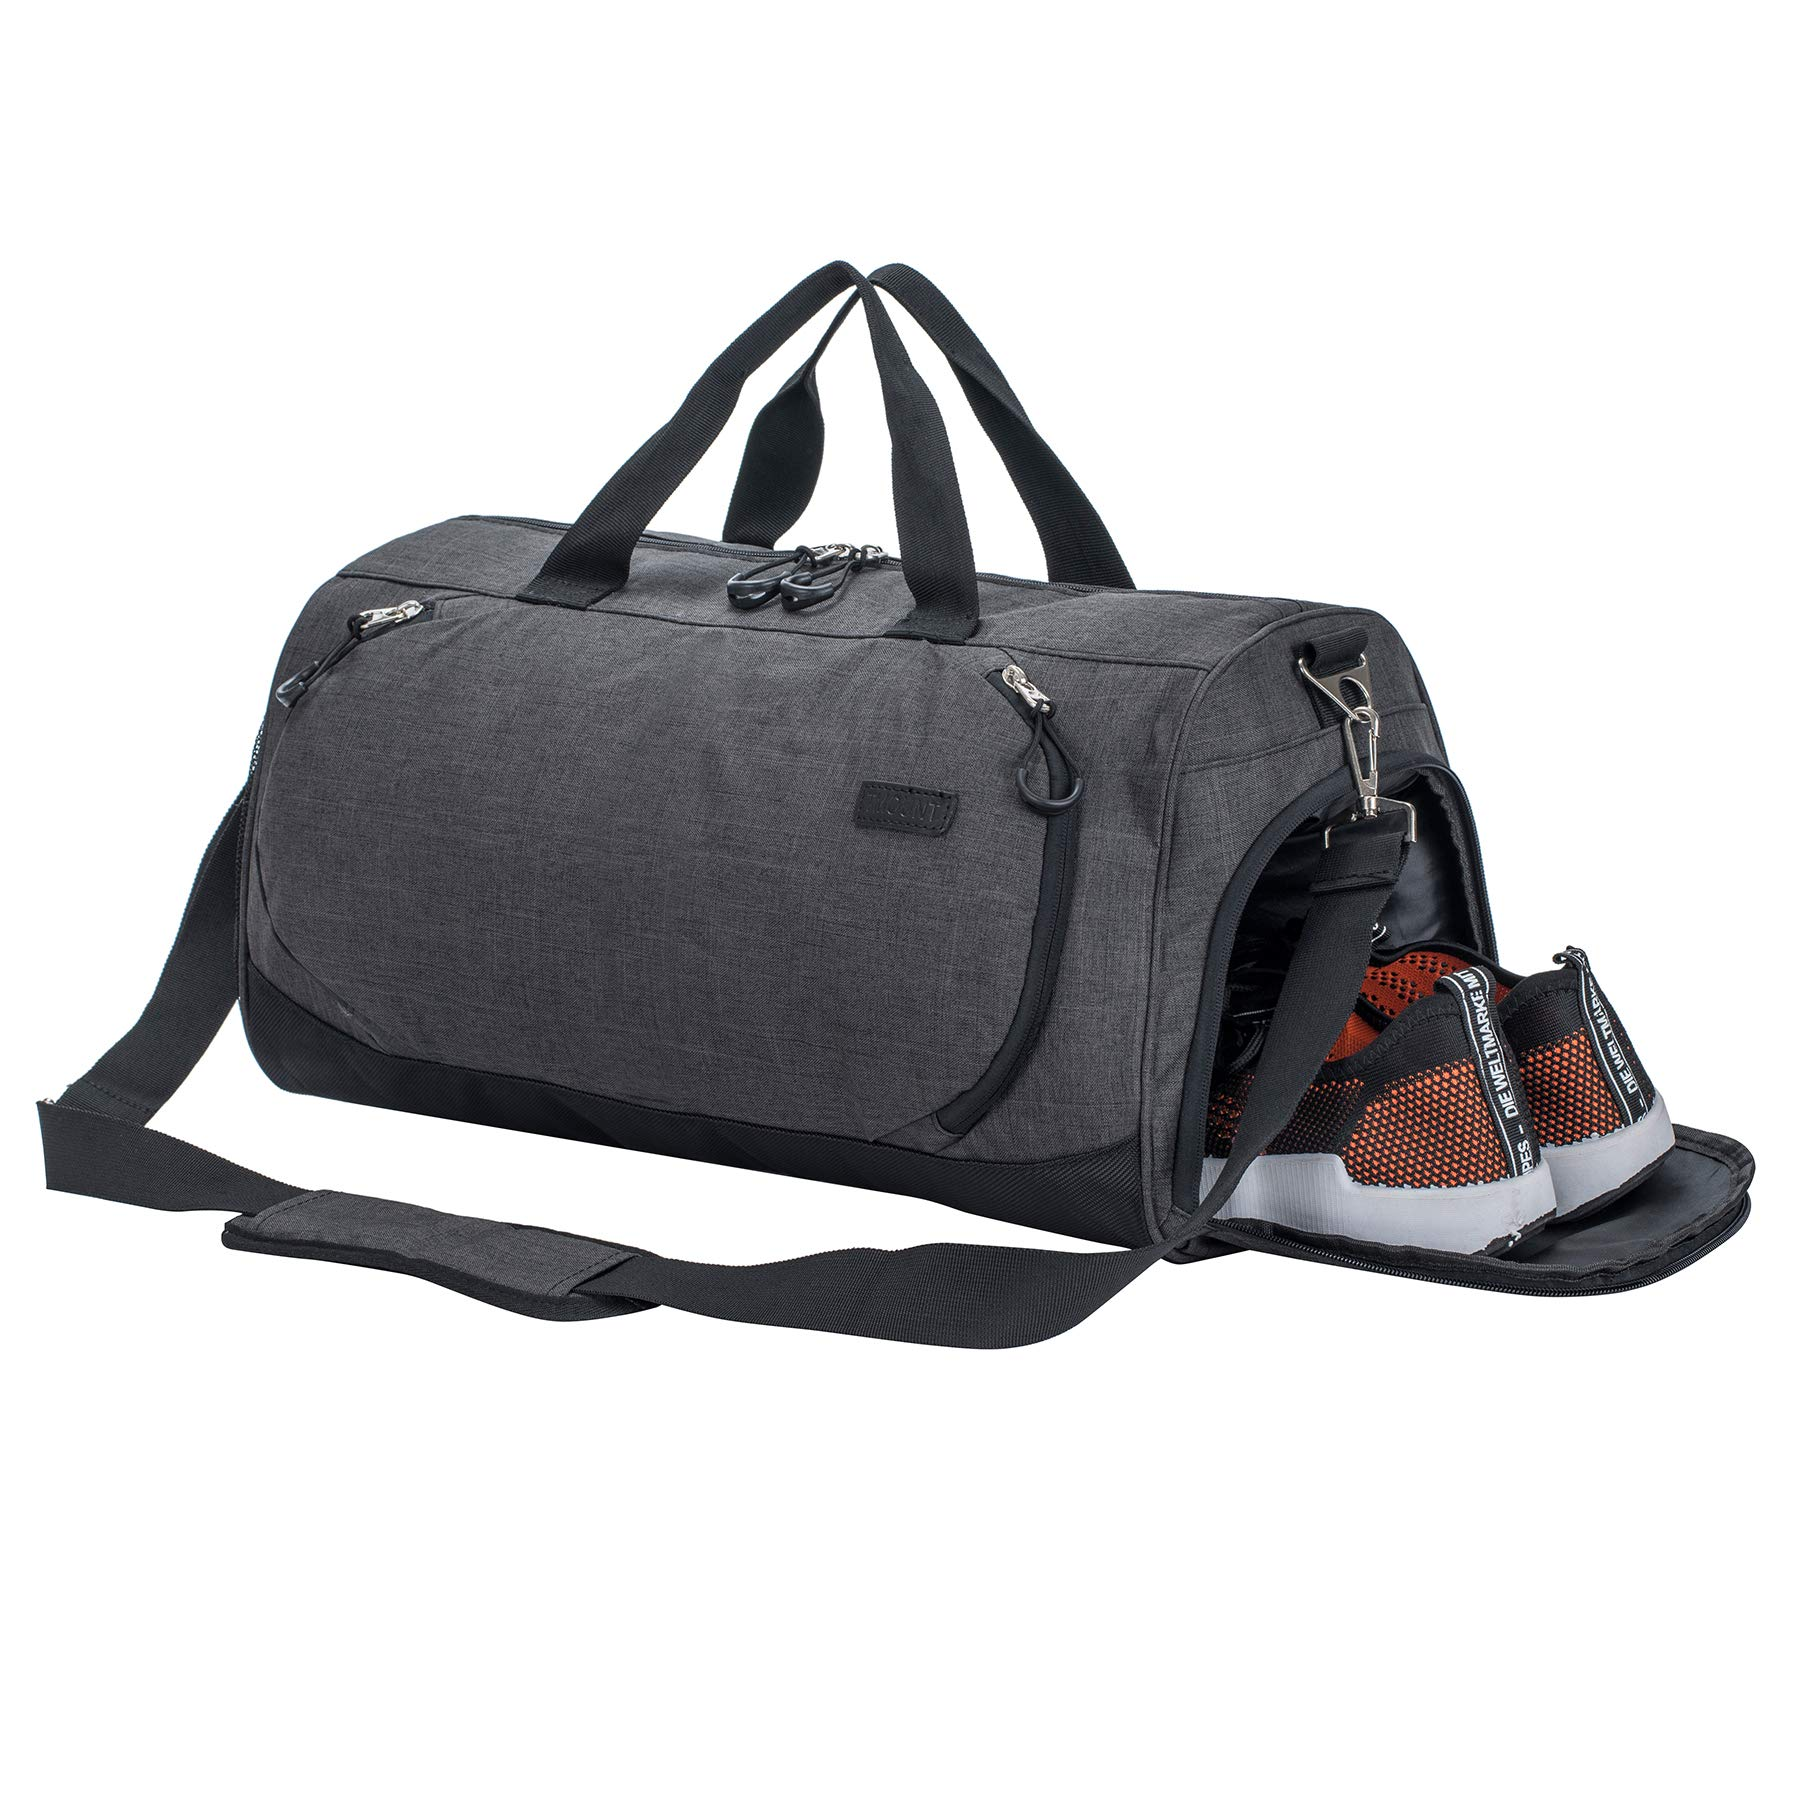 Sport Gym Bag Travel Duffel Bag with Shoe Compartment and Dry Wet Separation Layer for Men & Women